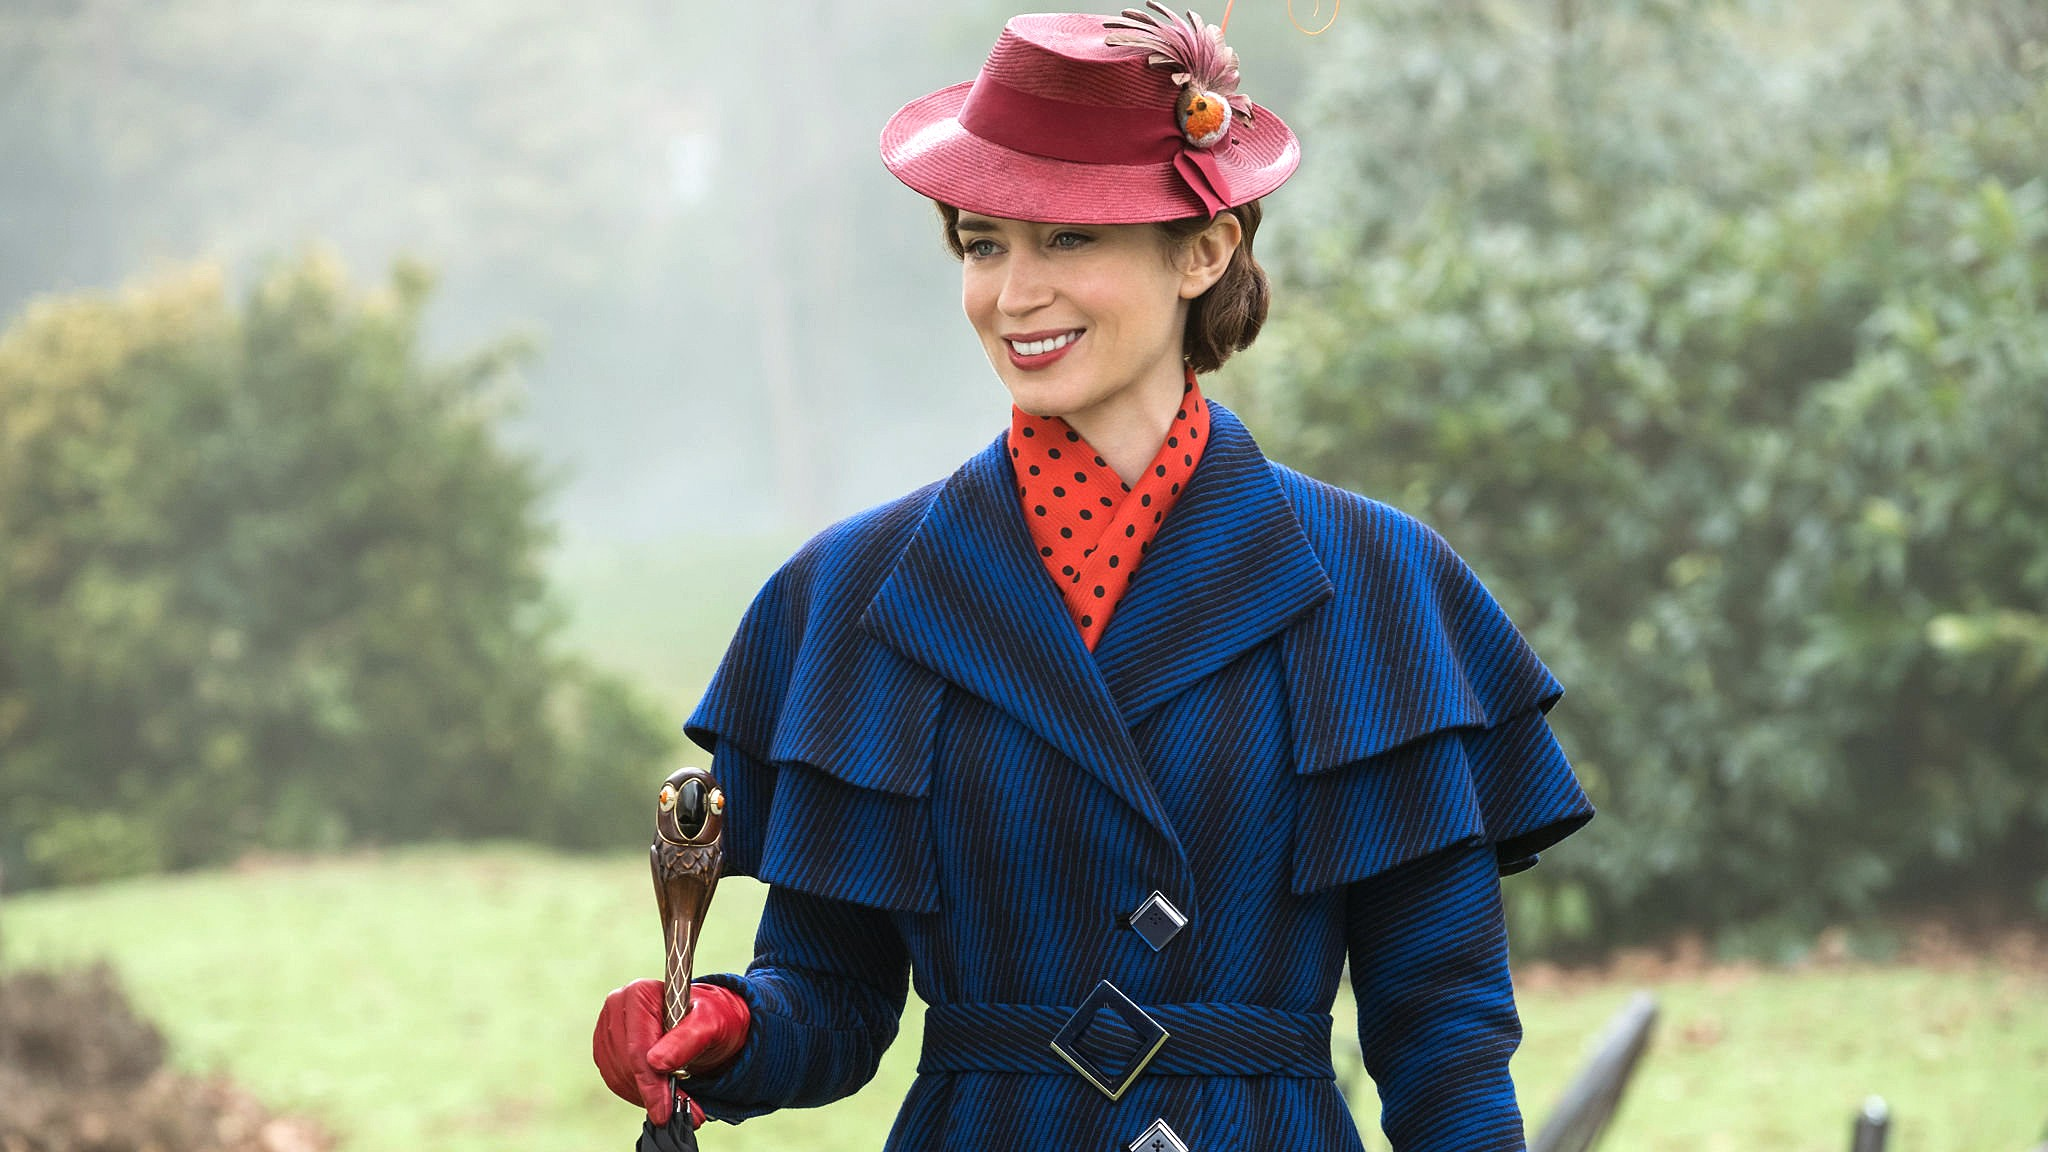 Mary Poppins Returns Is A Worthy Sequel To Its 1964 Original Movies San Luis Obispo New Times San Luis Obispo